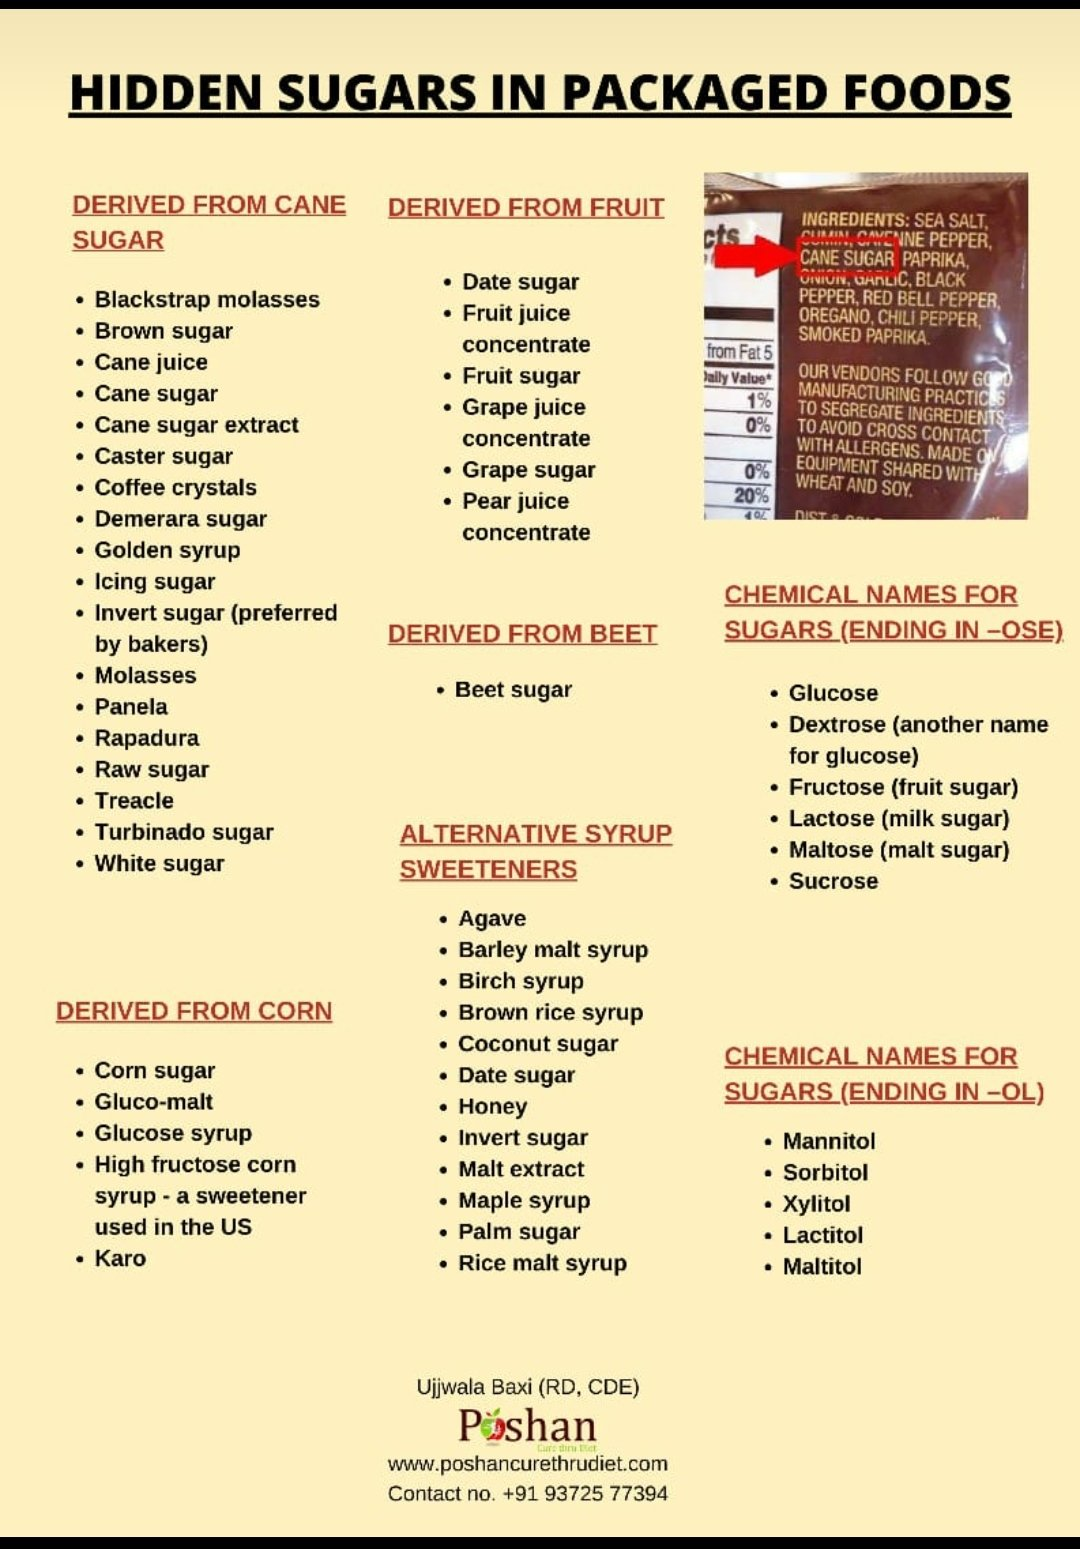 Food industry knows how to hide that sugar and use alternatives to make our taste buds wanting for more.. here's a list of sweetening agents commonly used in packaged foods. Do look for them when you are eating clean :) #sugarfree #diabetes #health #sugardetox @baxirahul https://t.co/OIJKKLUPNI